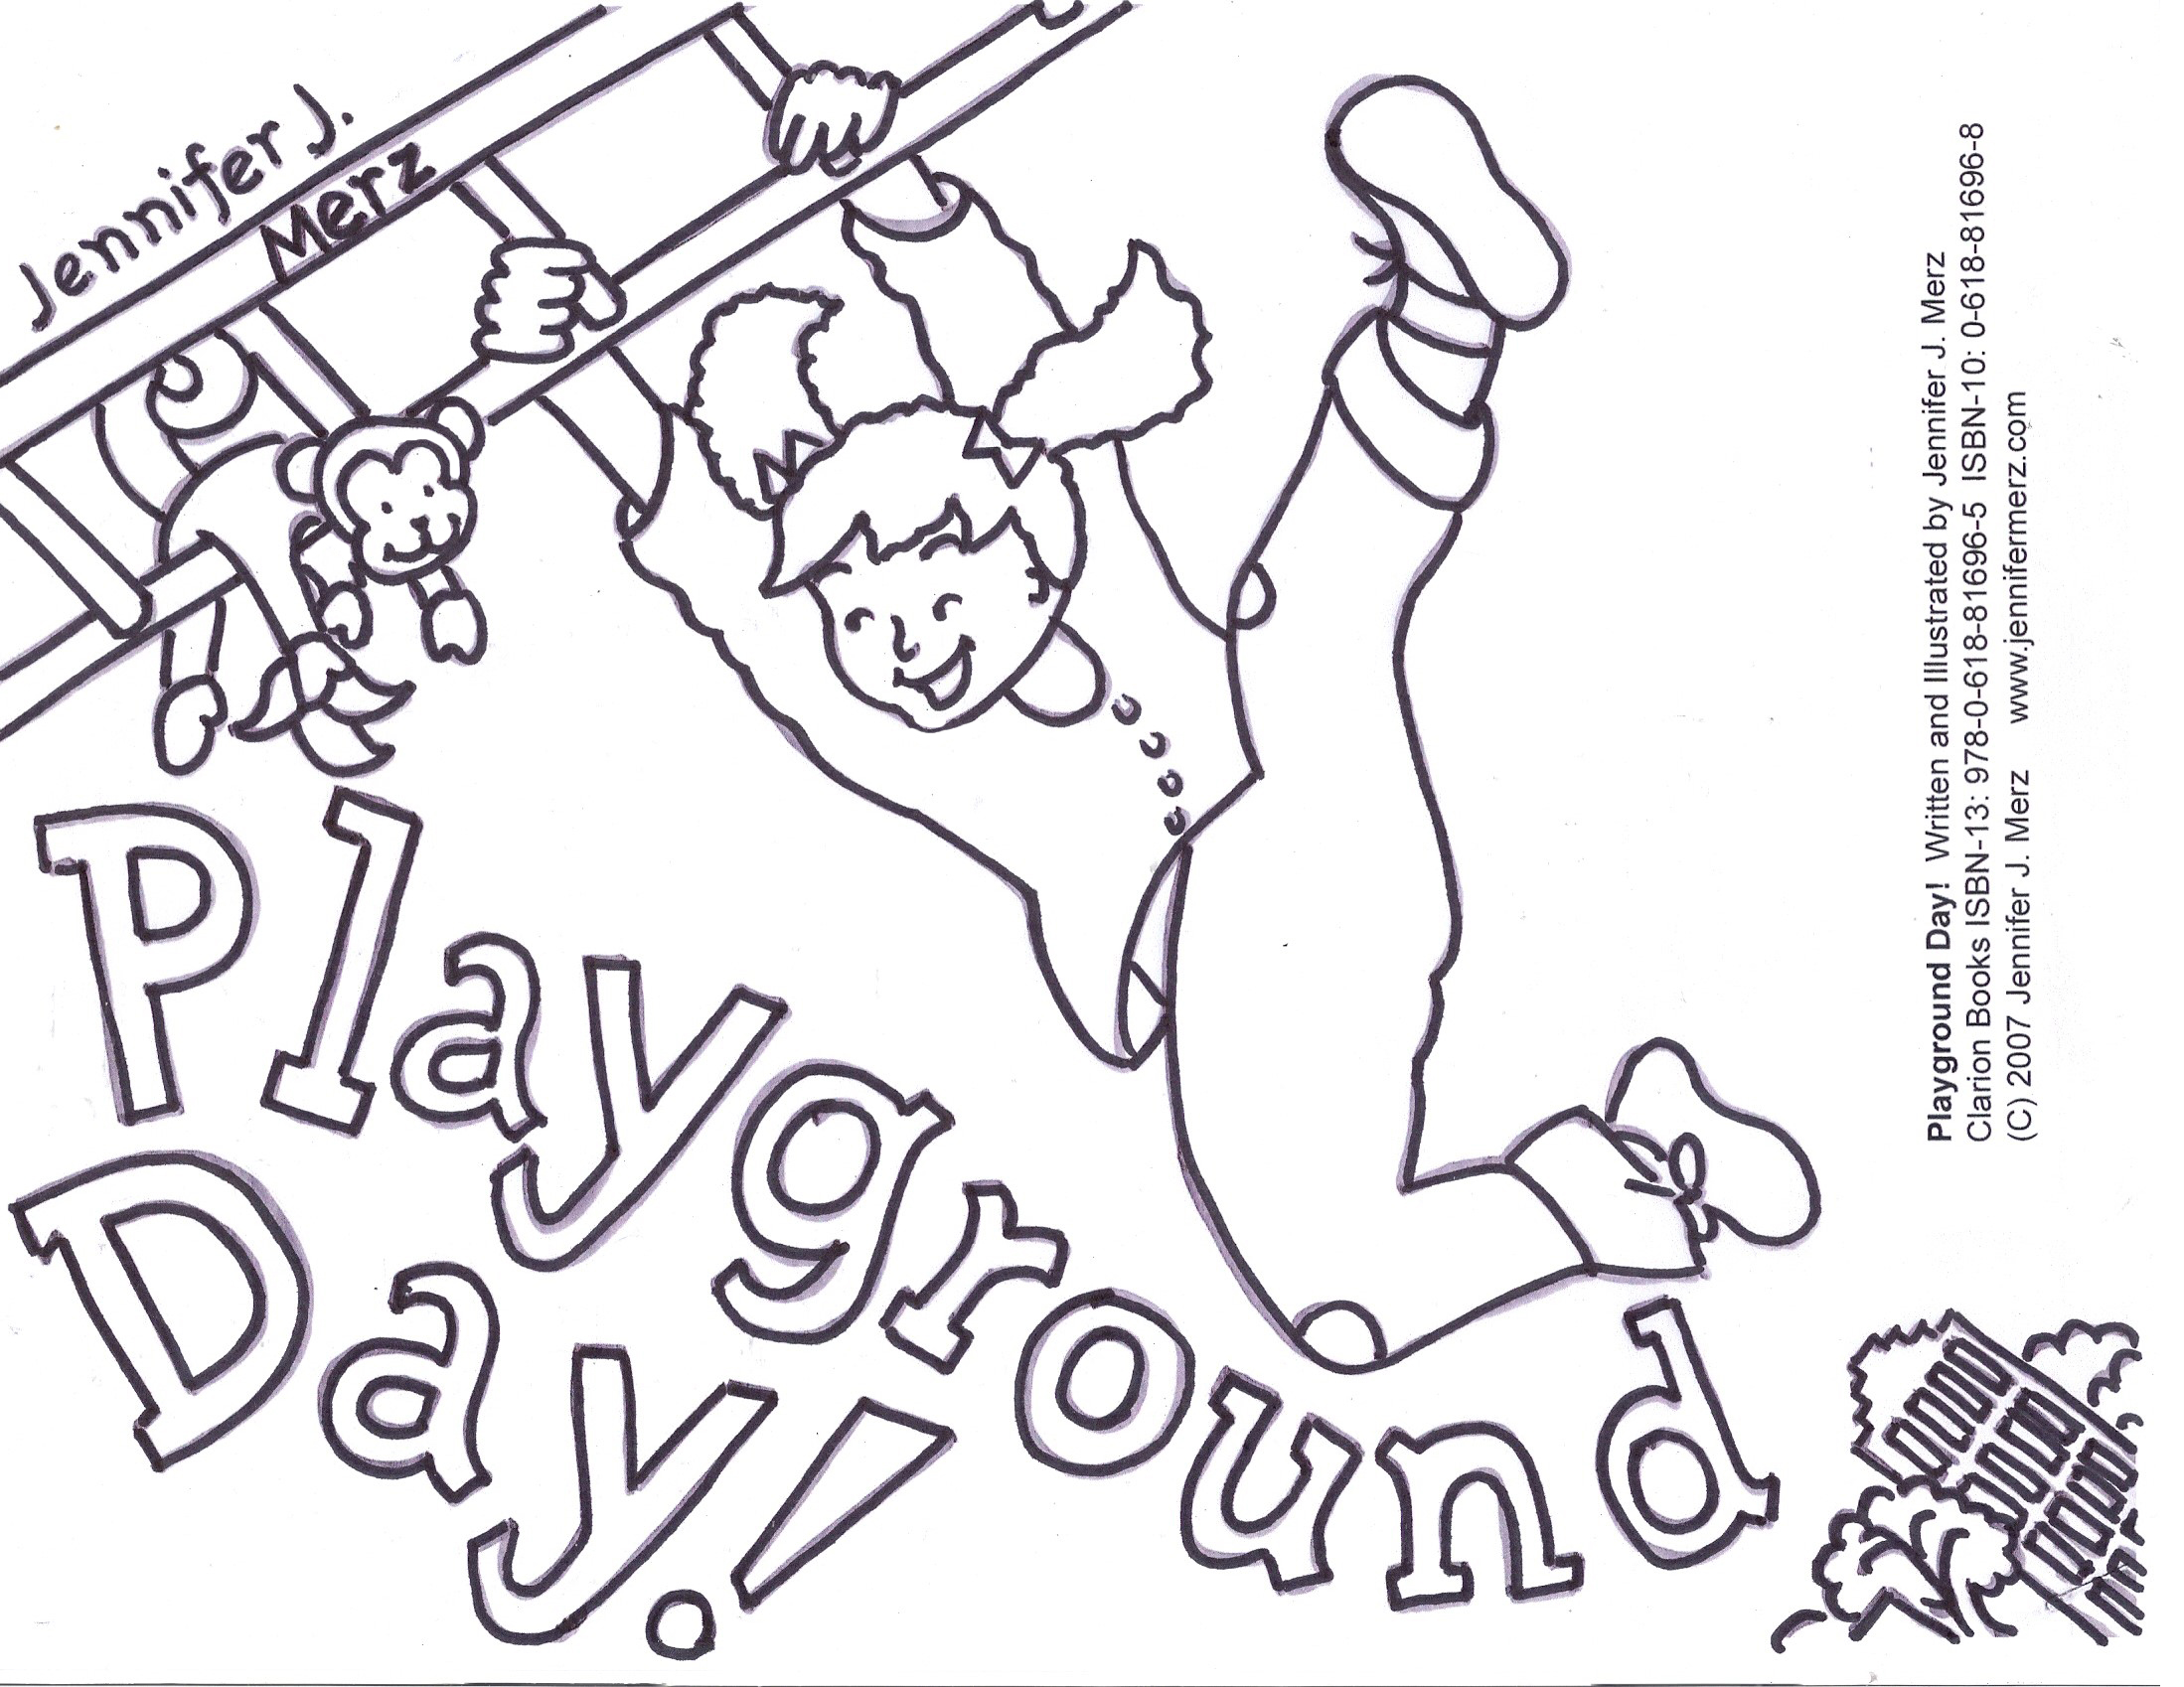 Playground Day page to color.jpg